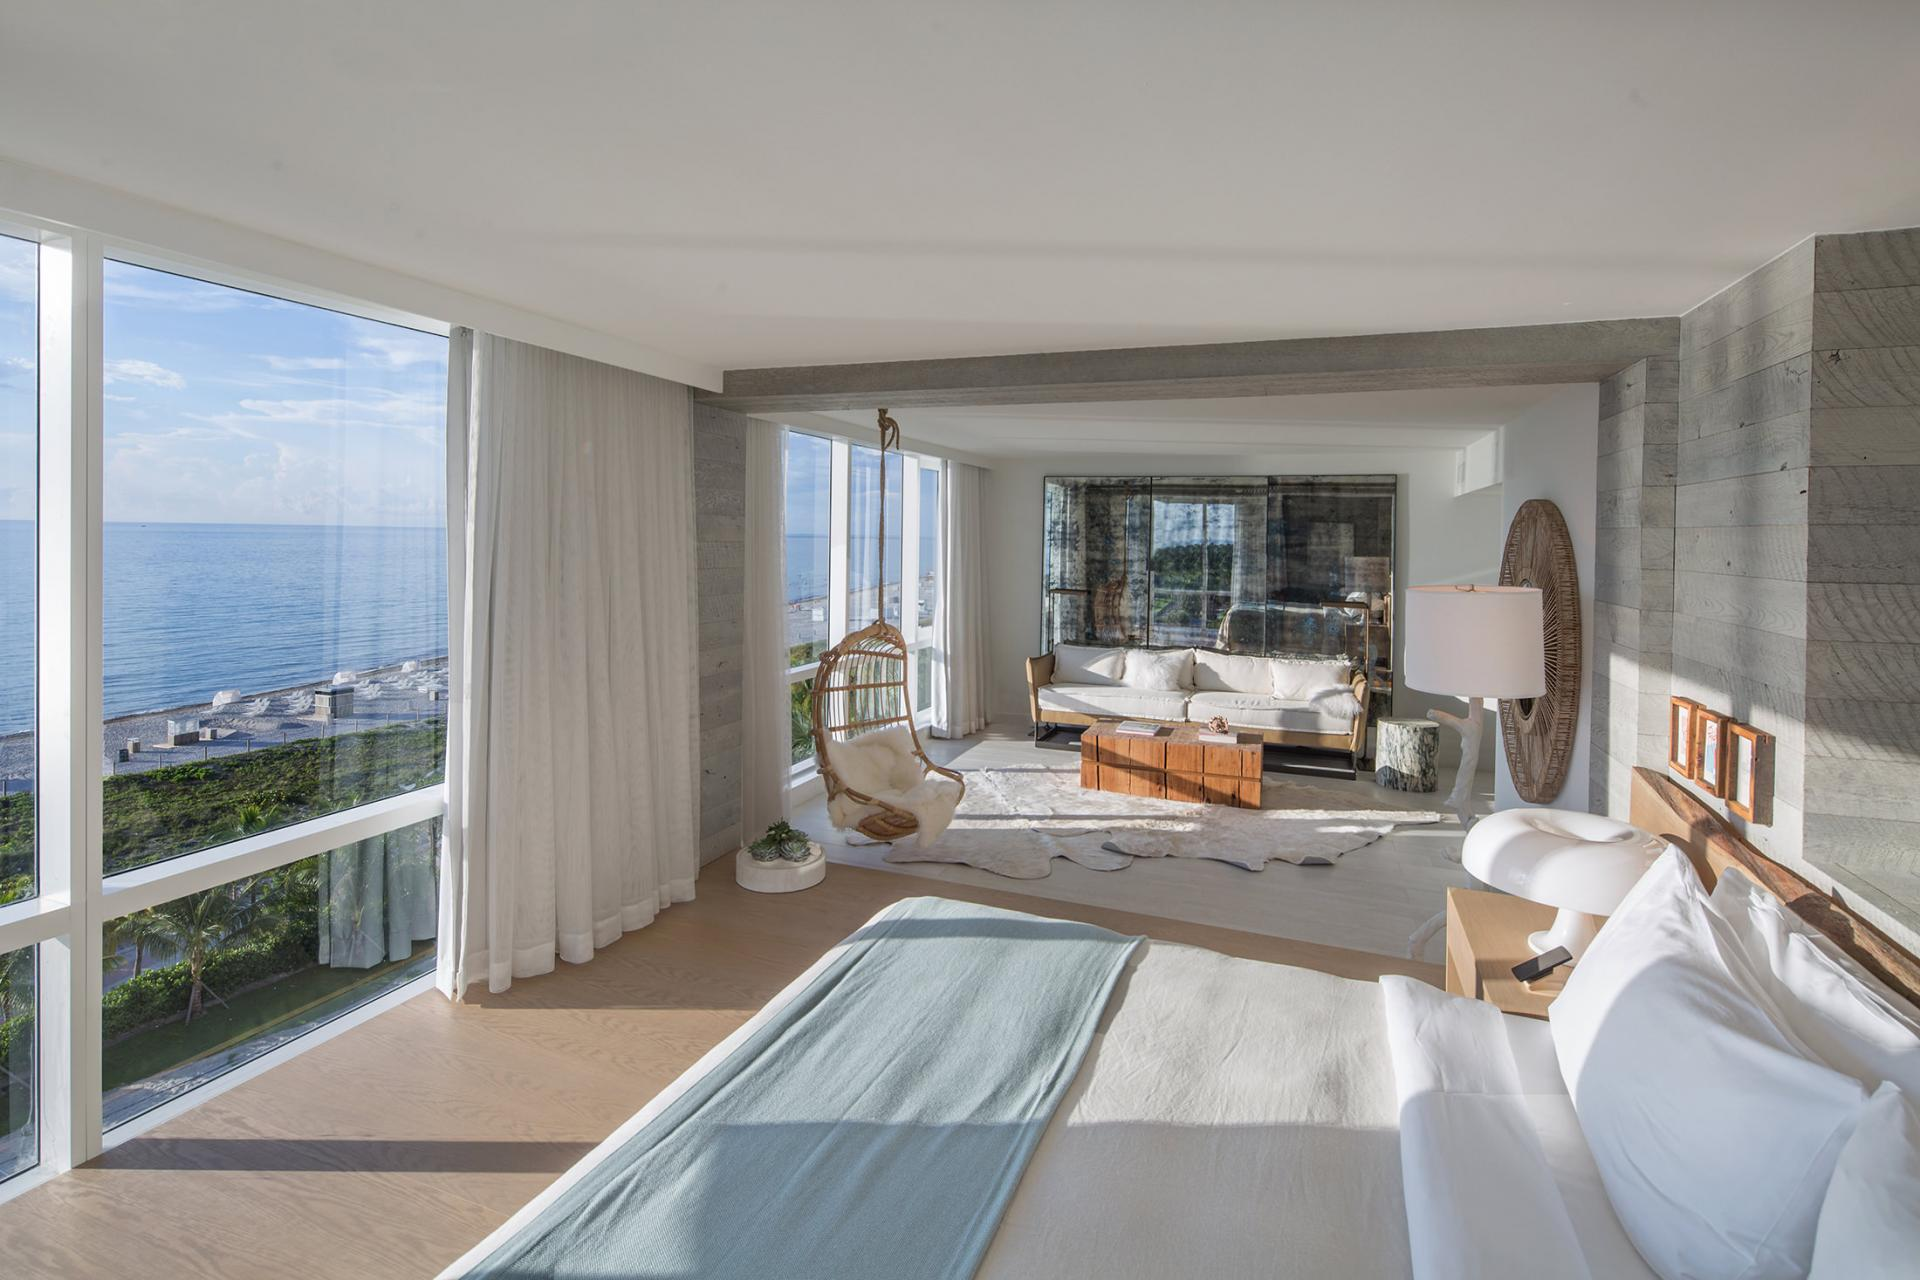 Presidential suite 1 hotel south beach